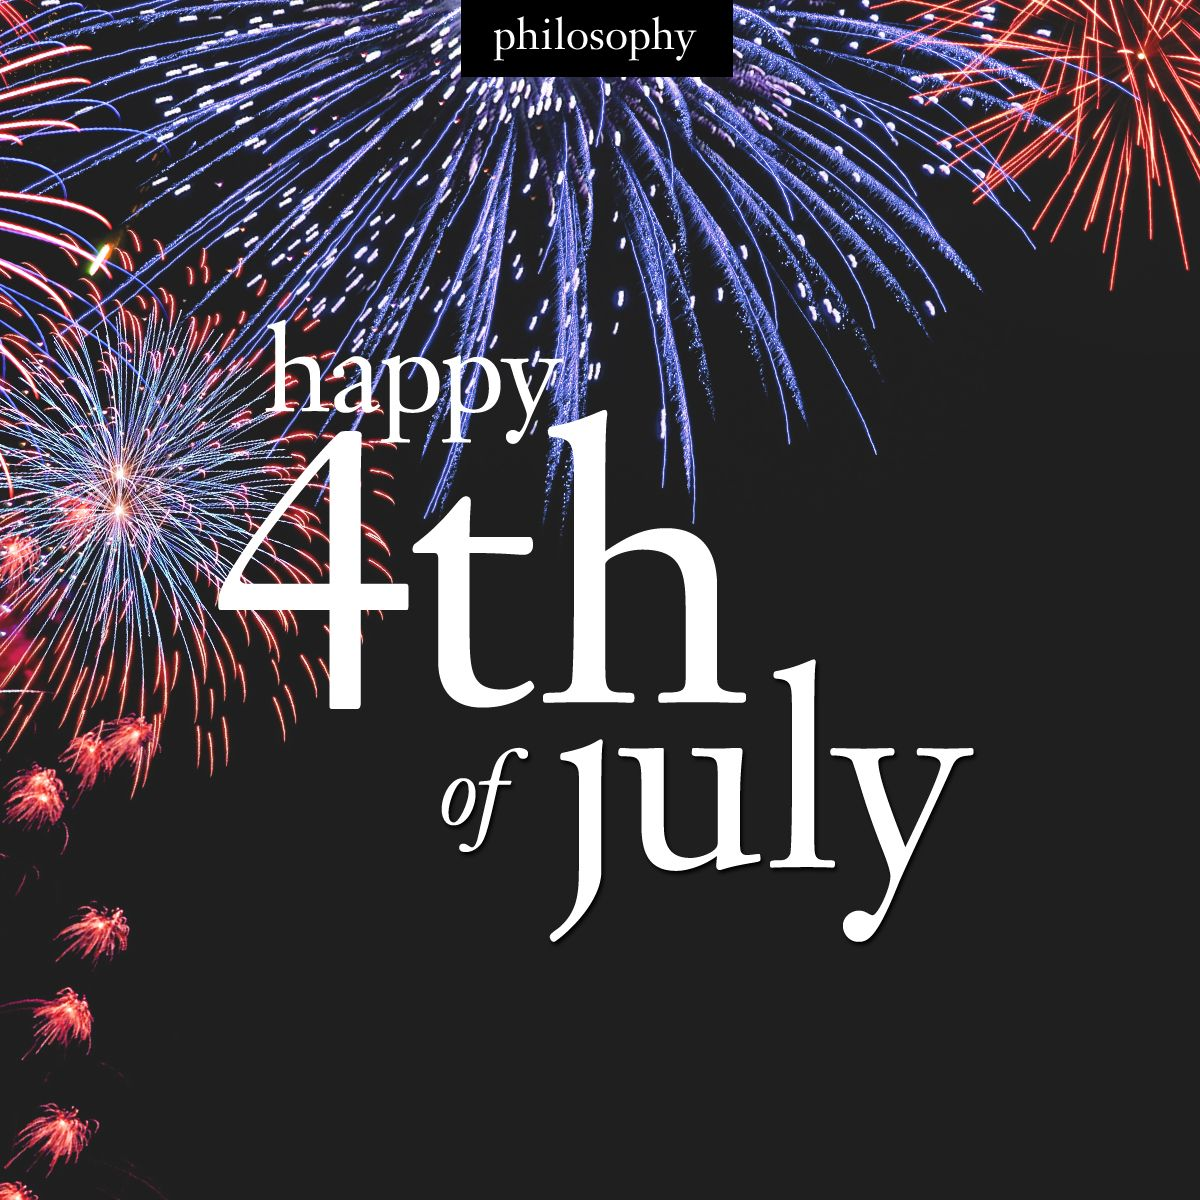 happy 4th of july, friends! xo